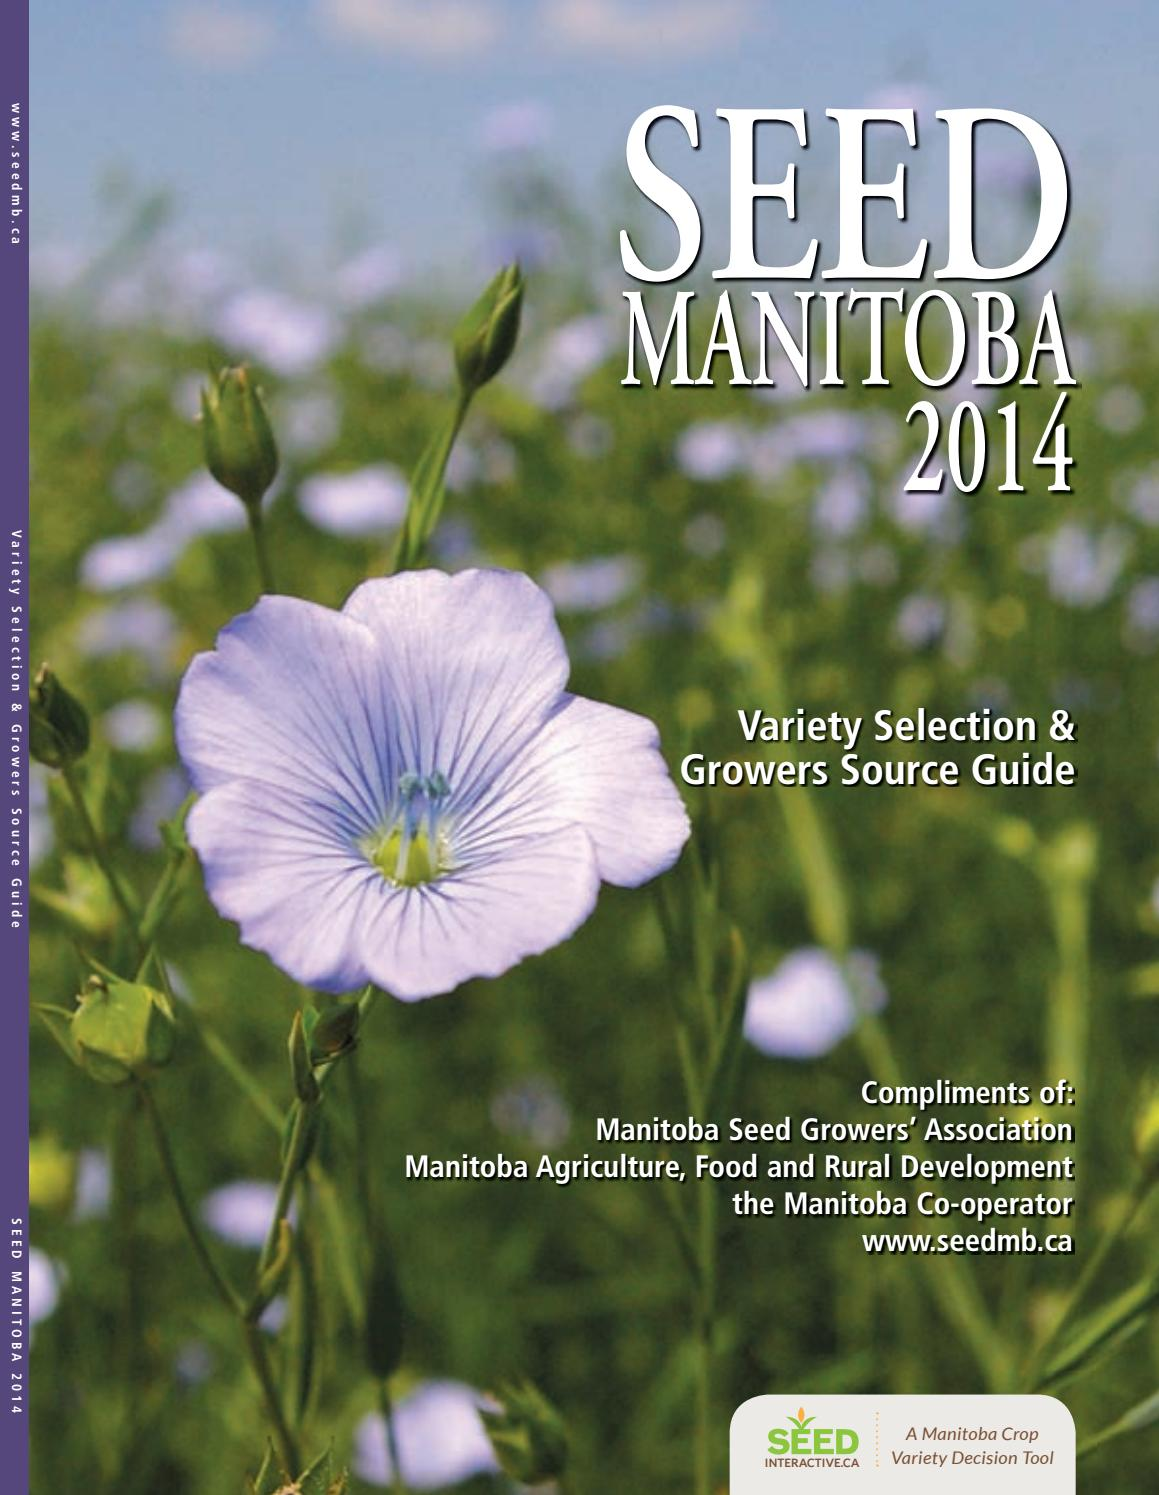 Seed Manitoba 2014 By Farm Business Communications Issuu